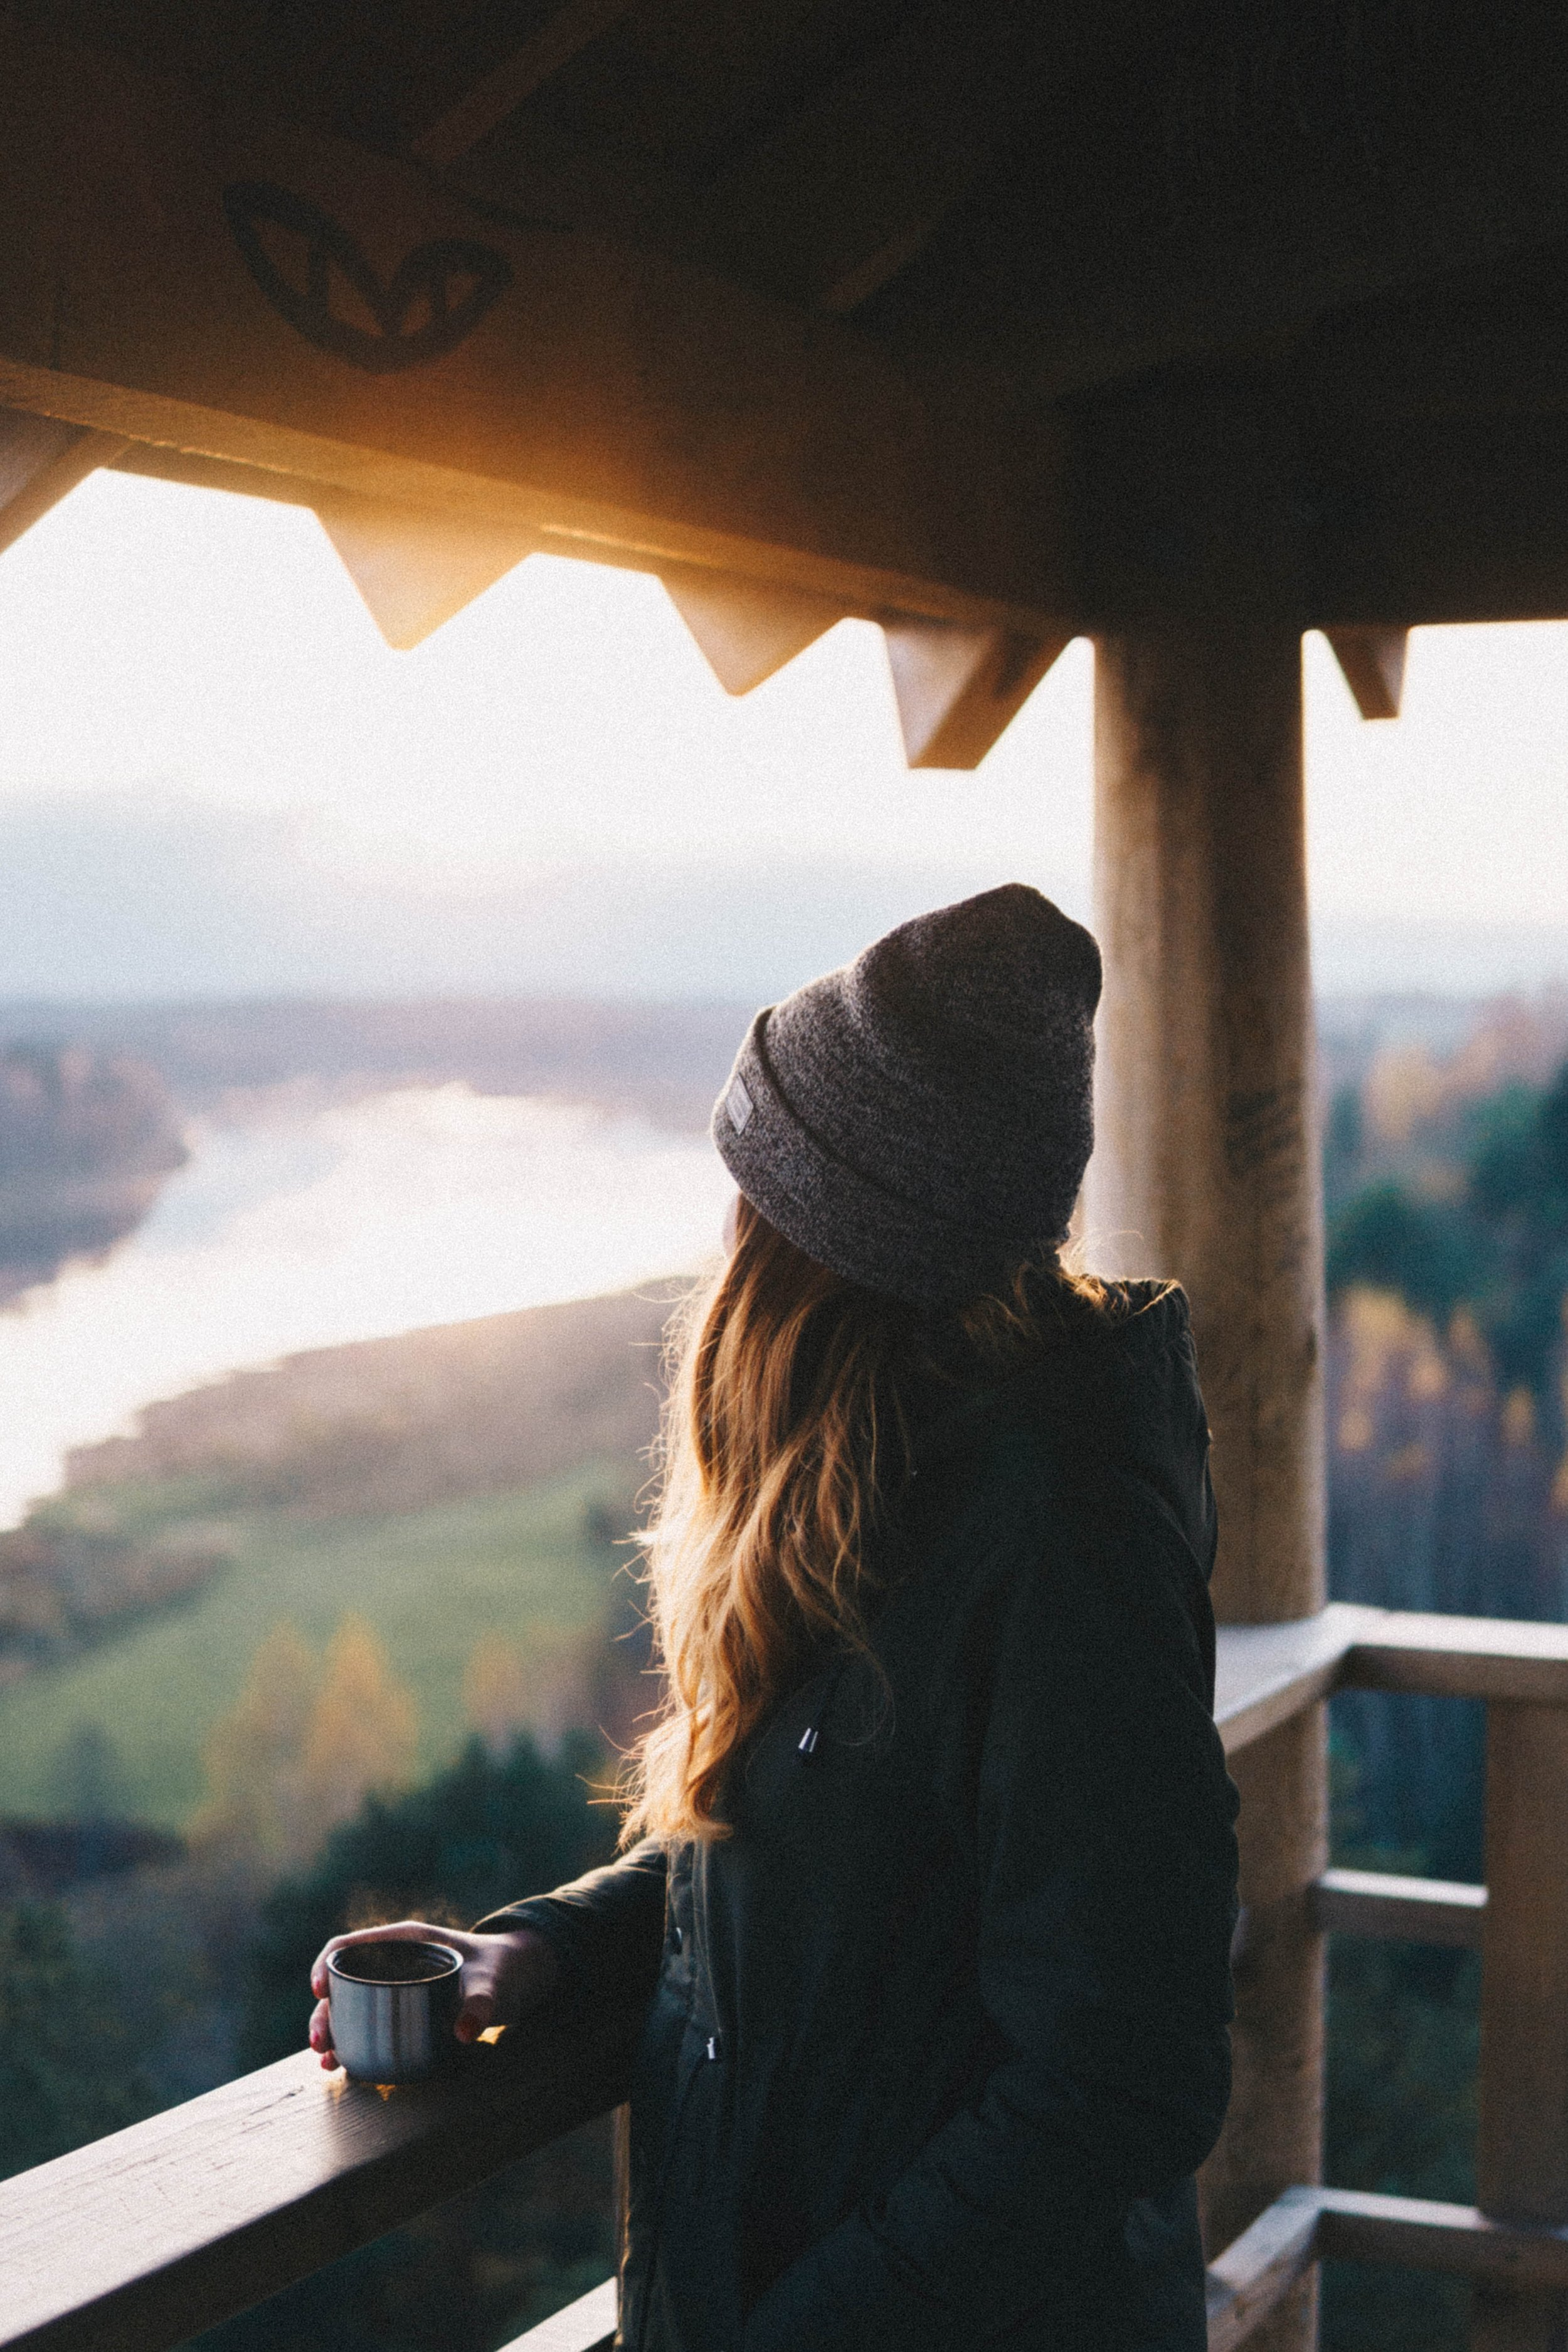 A woman with a mug standing at a railing, gazing out at a mountain valley